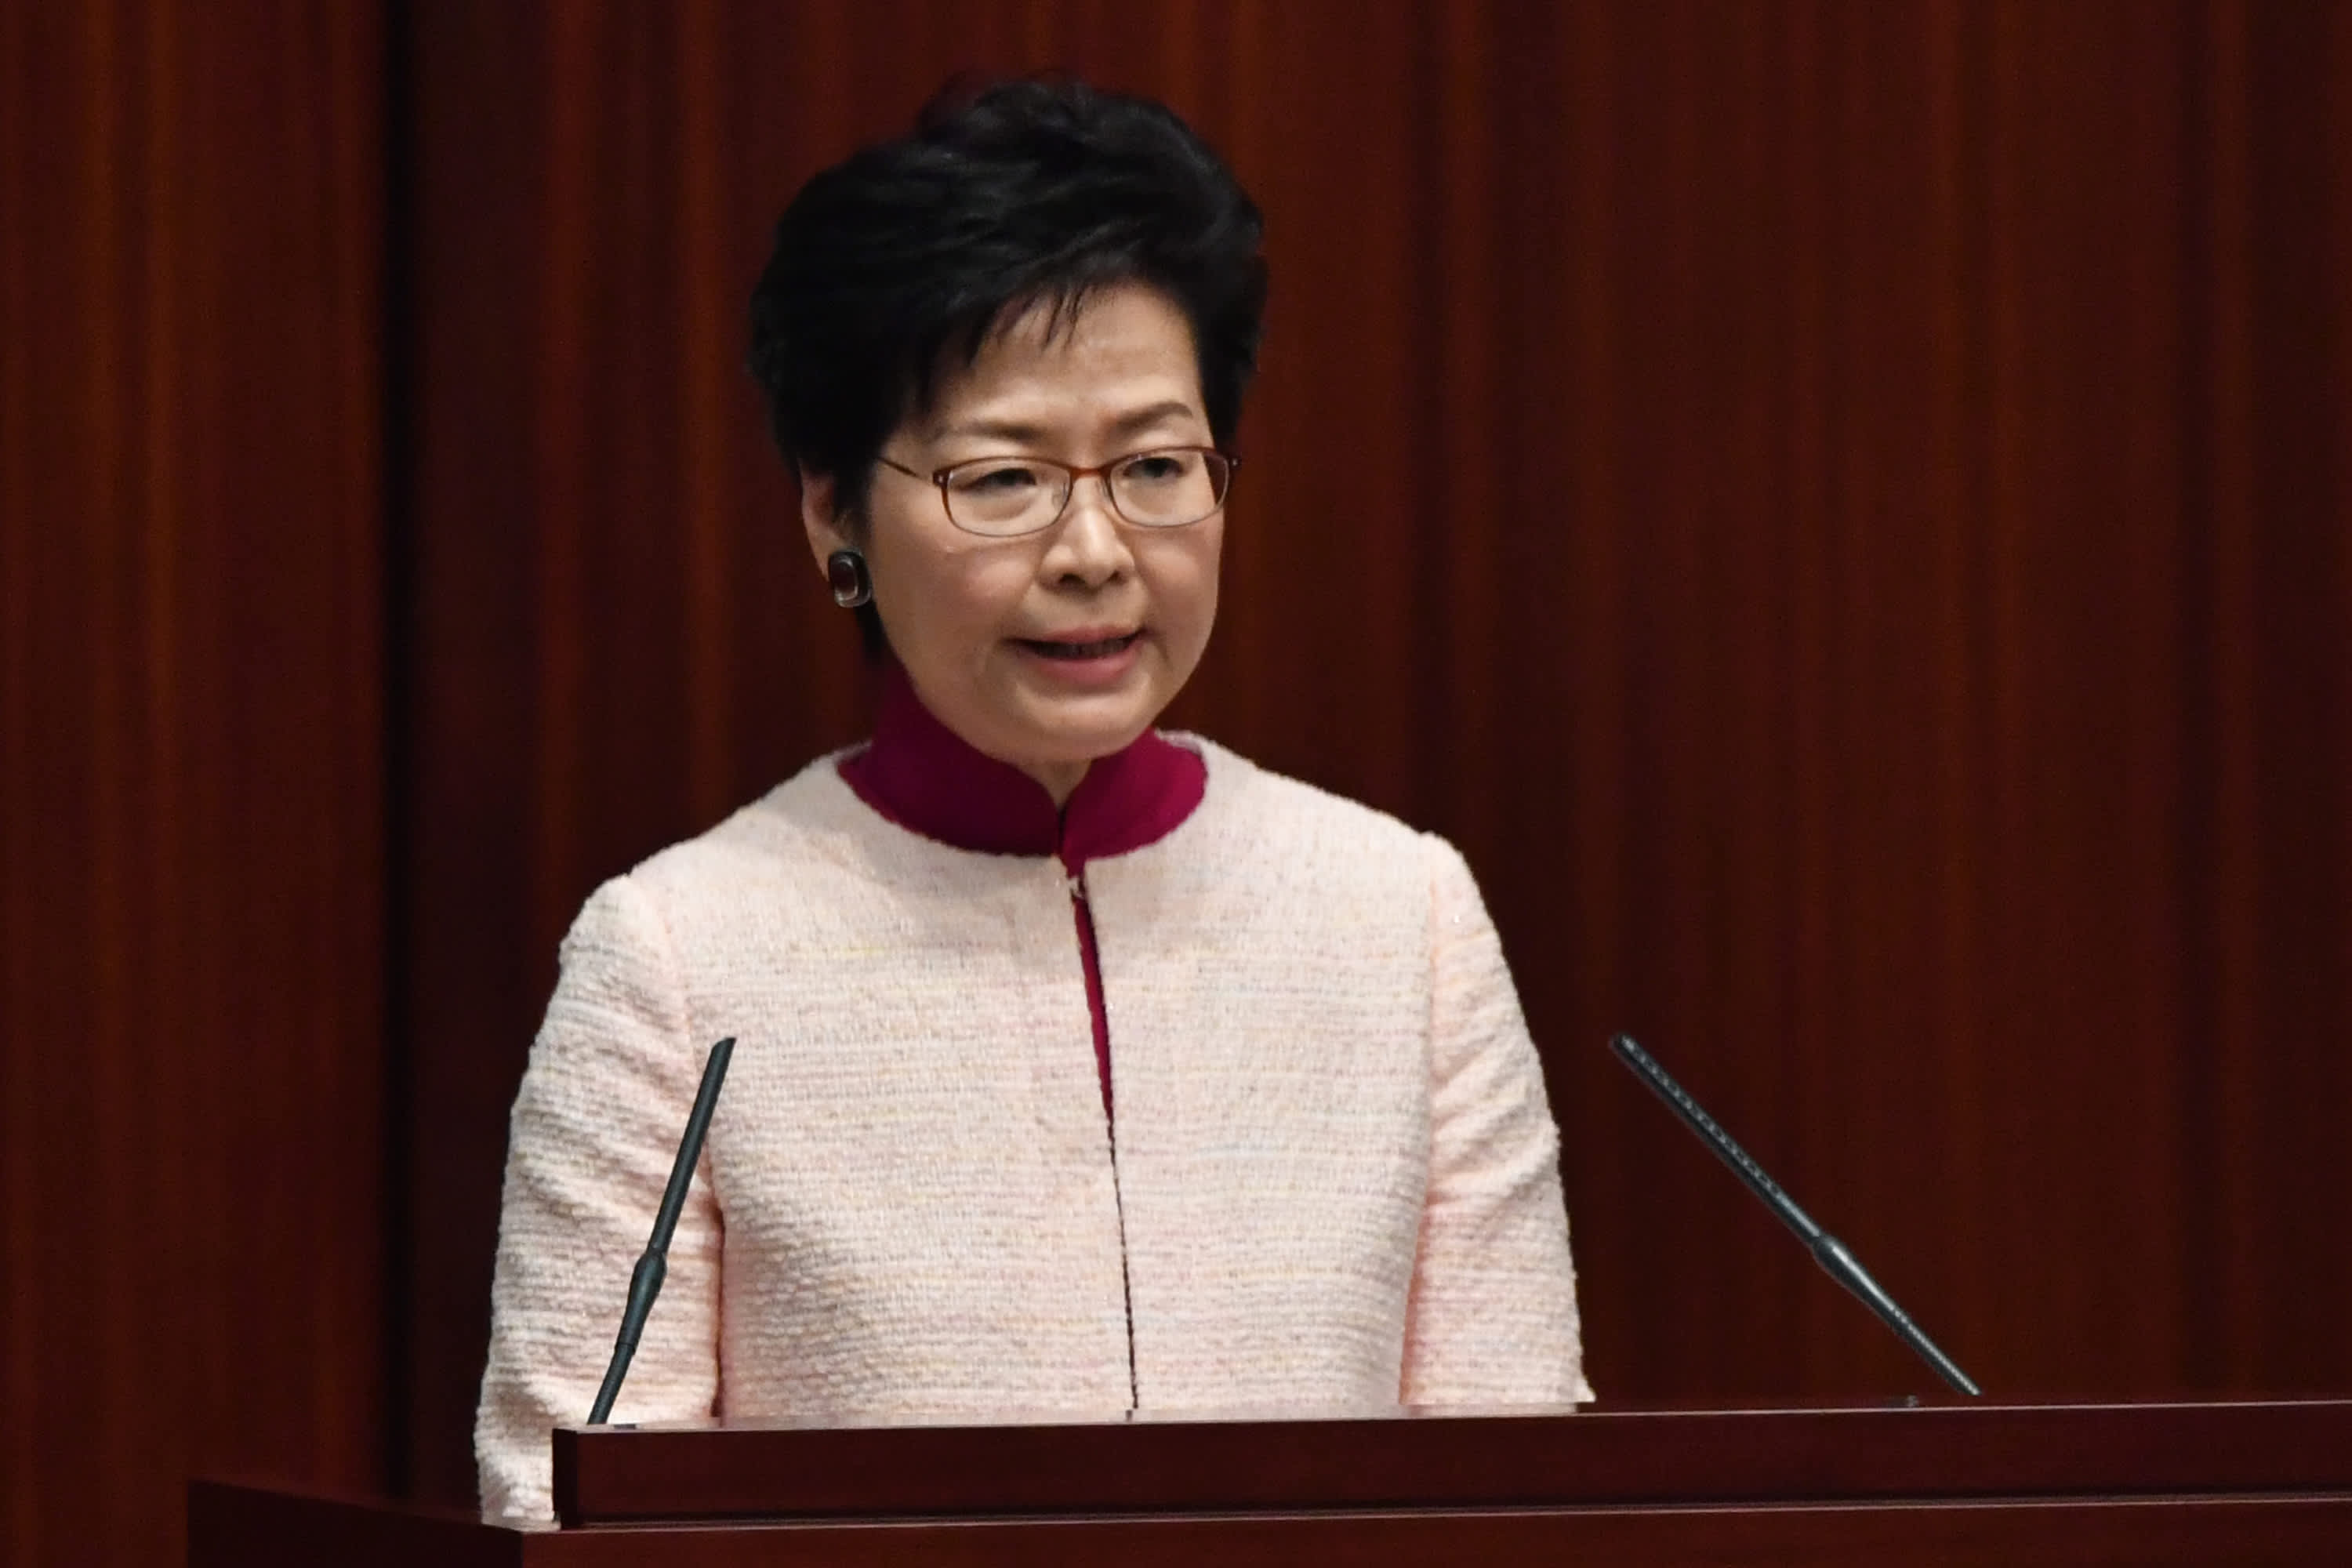 Carrie Lam suggests foreign influence in Hong Kong protests: 'Perhaps there is something at work'